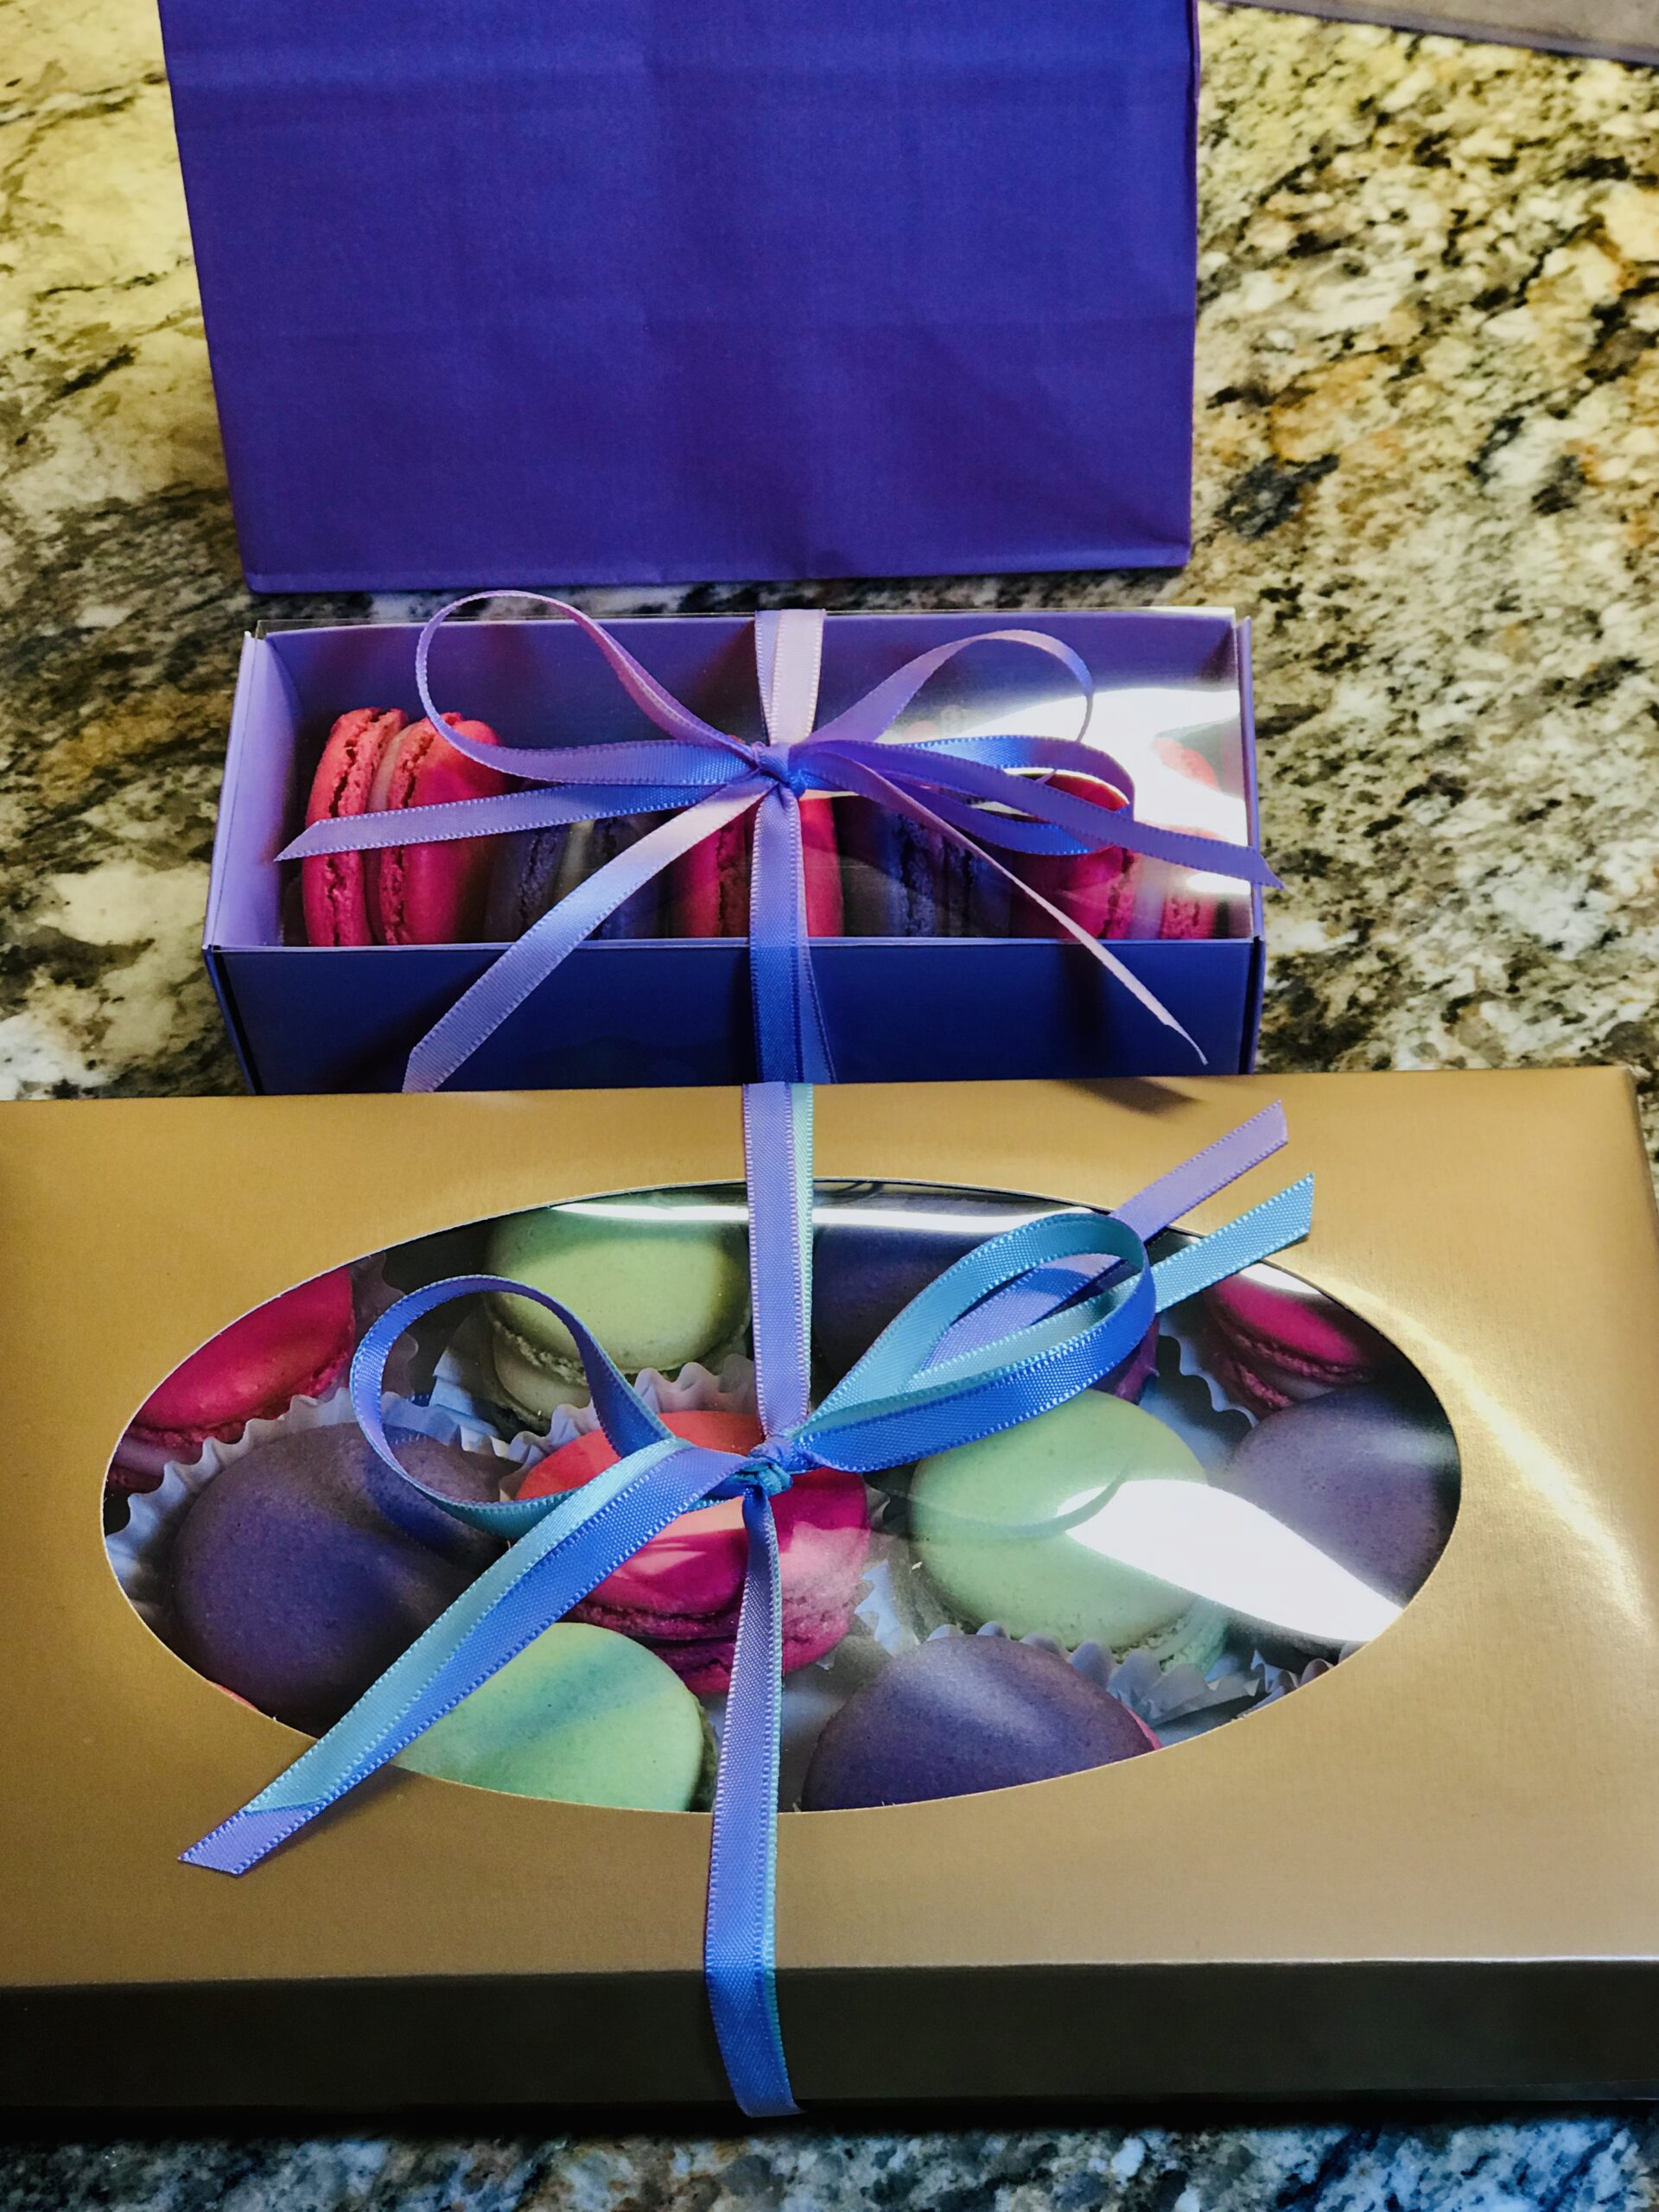 Macaron (not to be confused with Macaroon) gift boxes